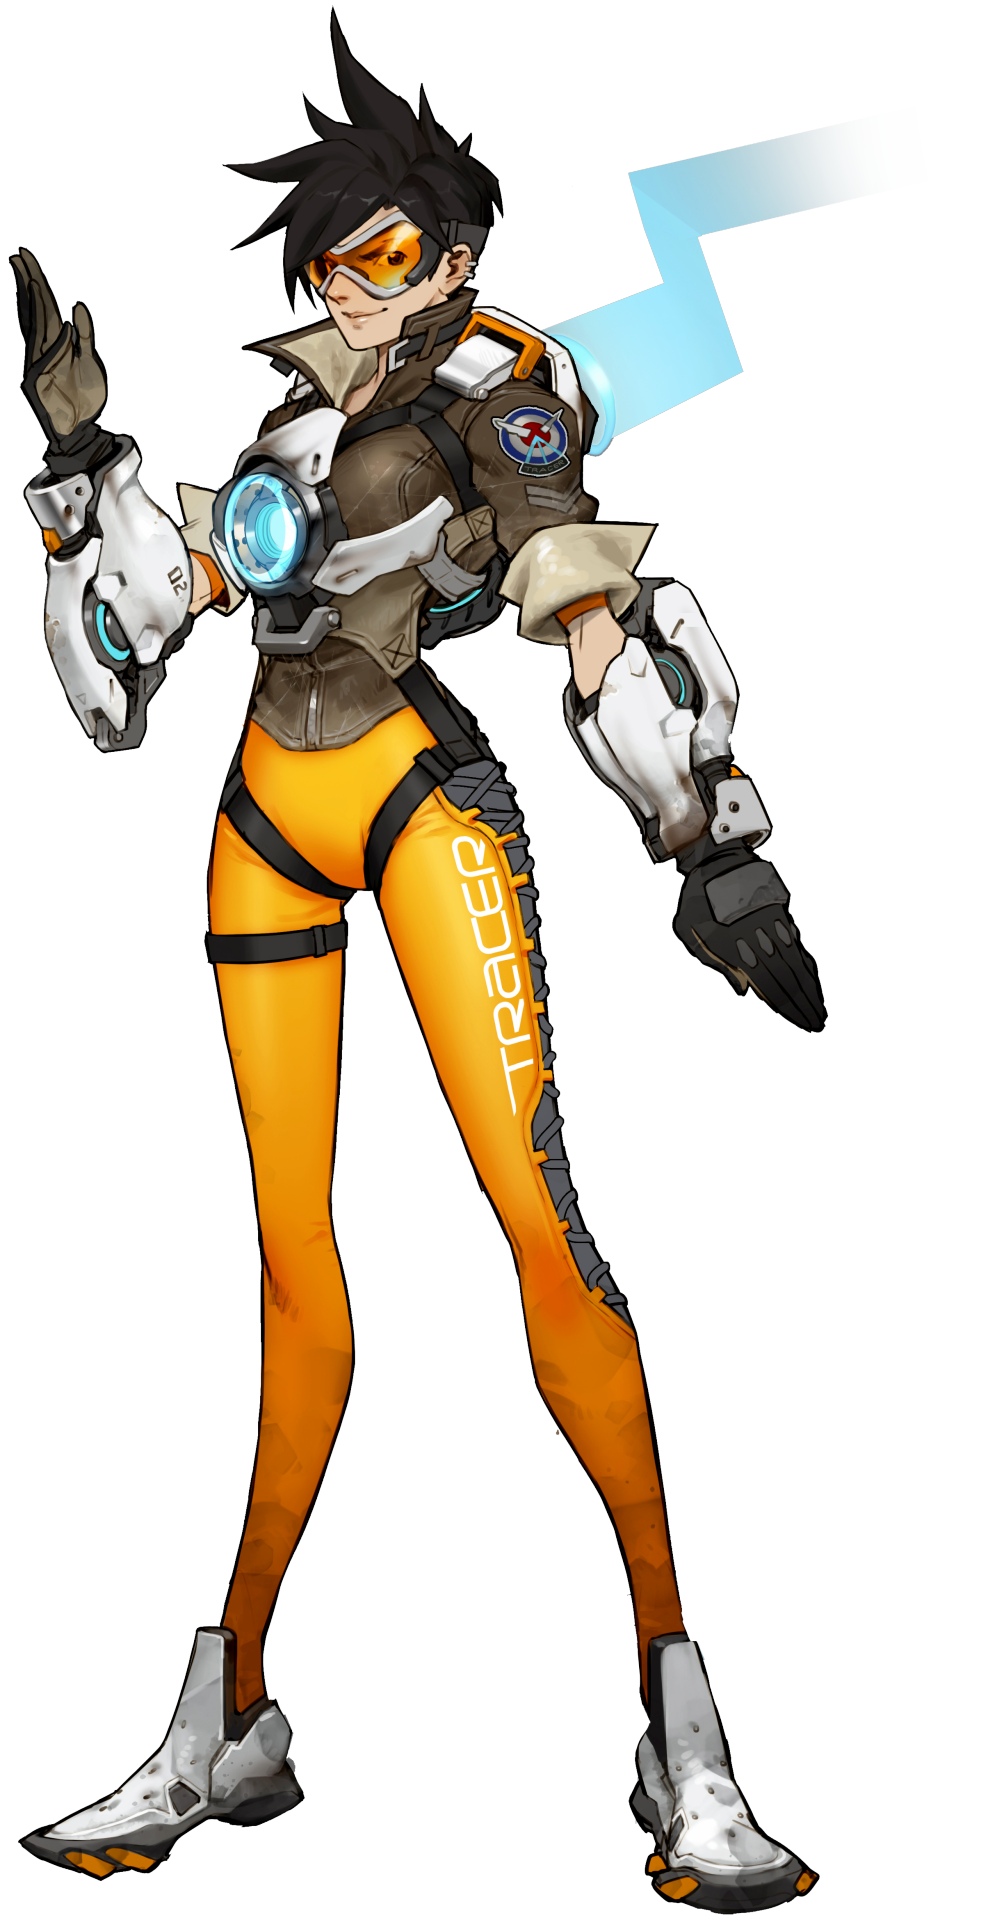 Overwatch character png. Image tracer heroes wiki